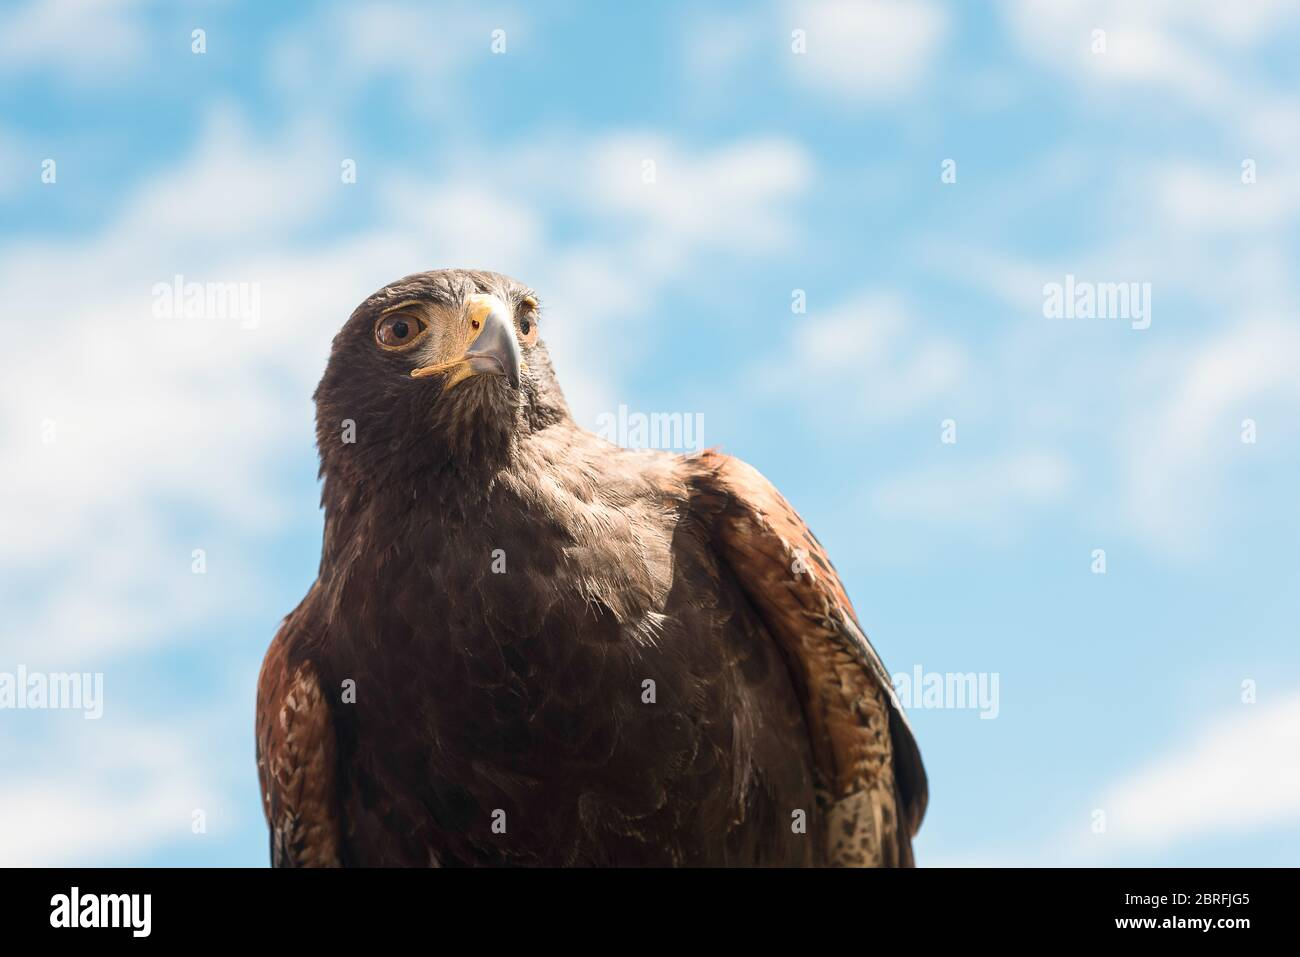 Close-up of a stunning Harris's hawk observing the world with his hazel colored eyes against a blue sky background. Stock Photo